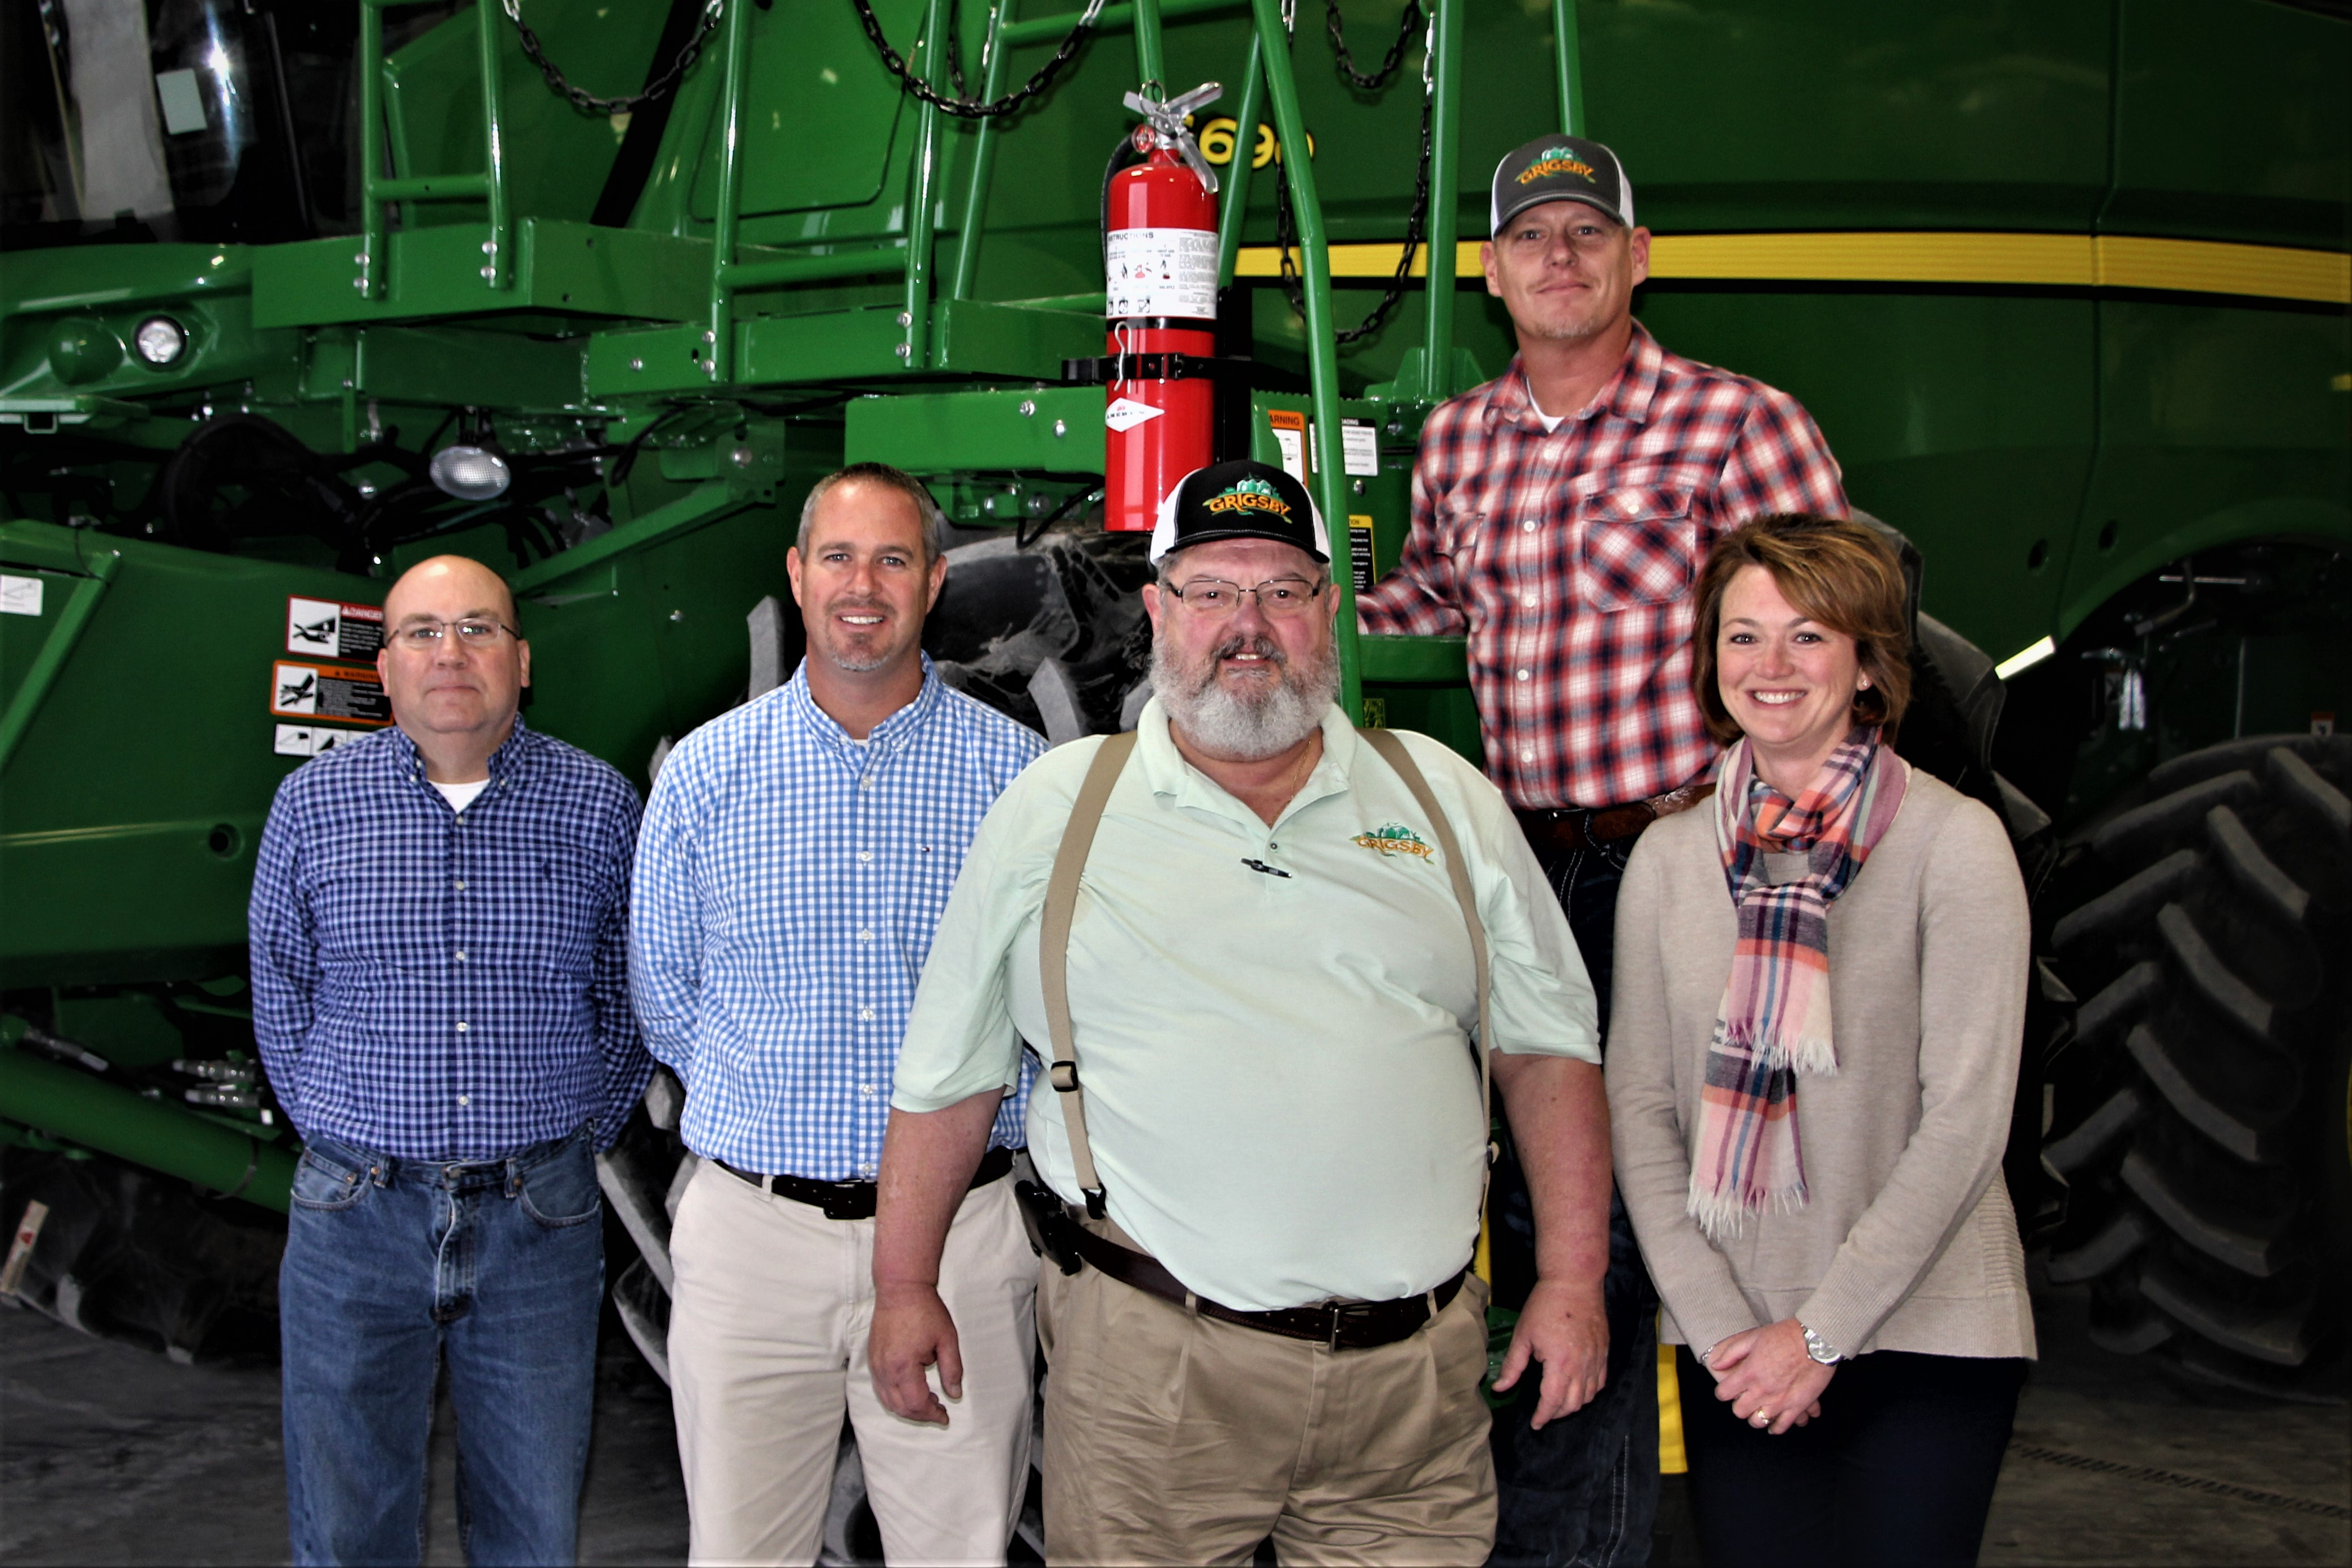 Board of Managers: Andy Roselle, Chad Grigsby, Joel Grigsby, Robby Grigsby and Christy Hale Pound